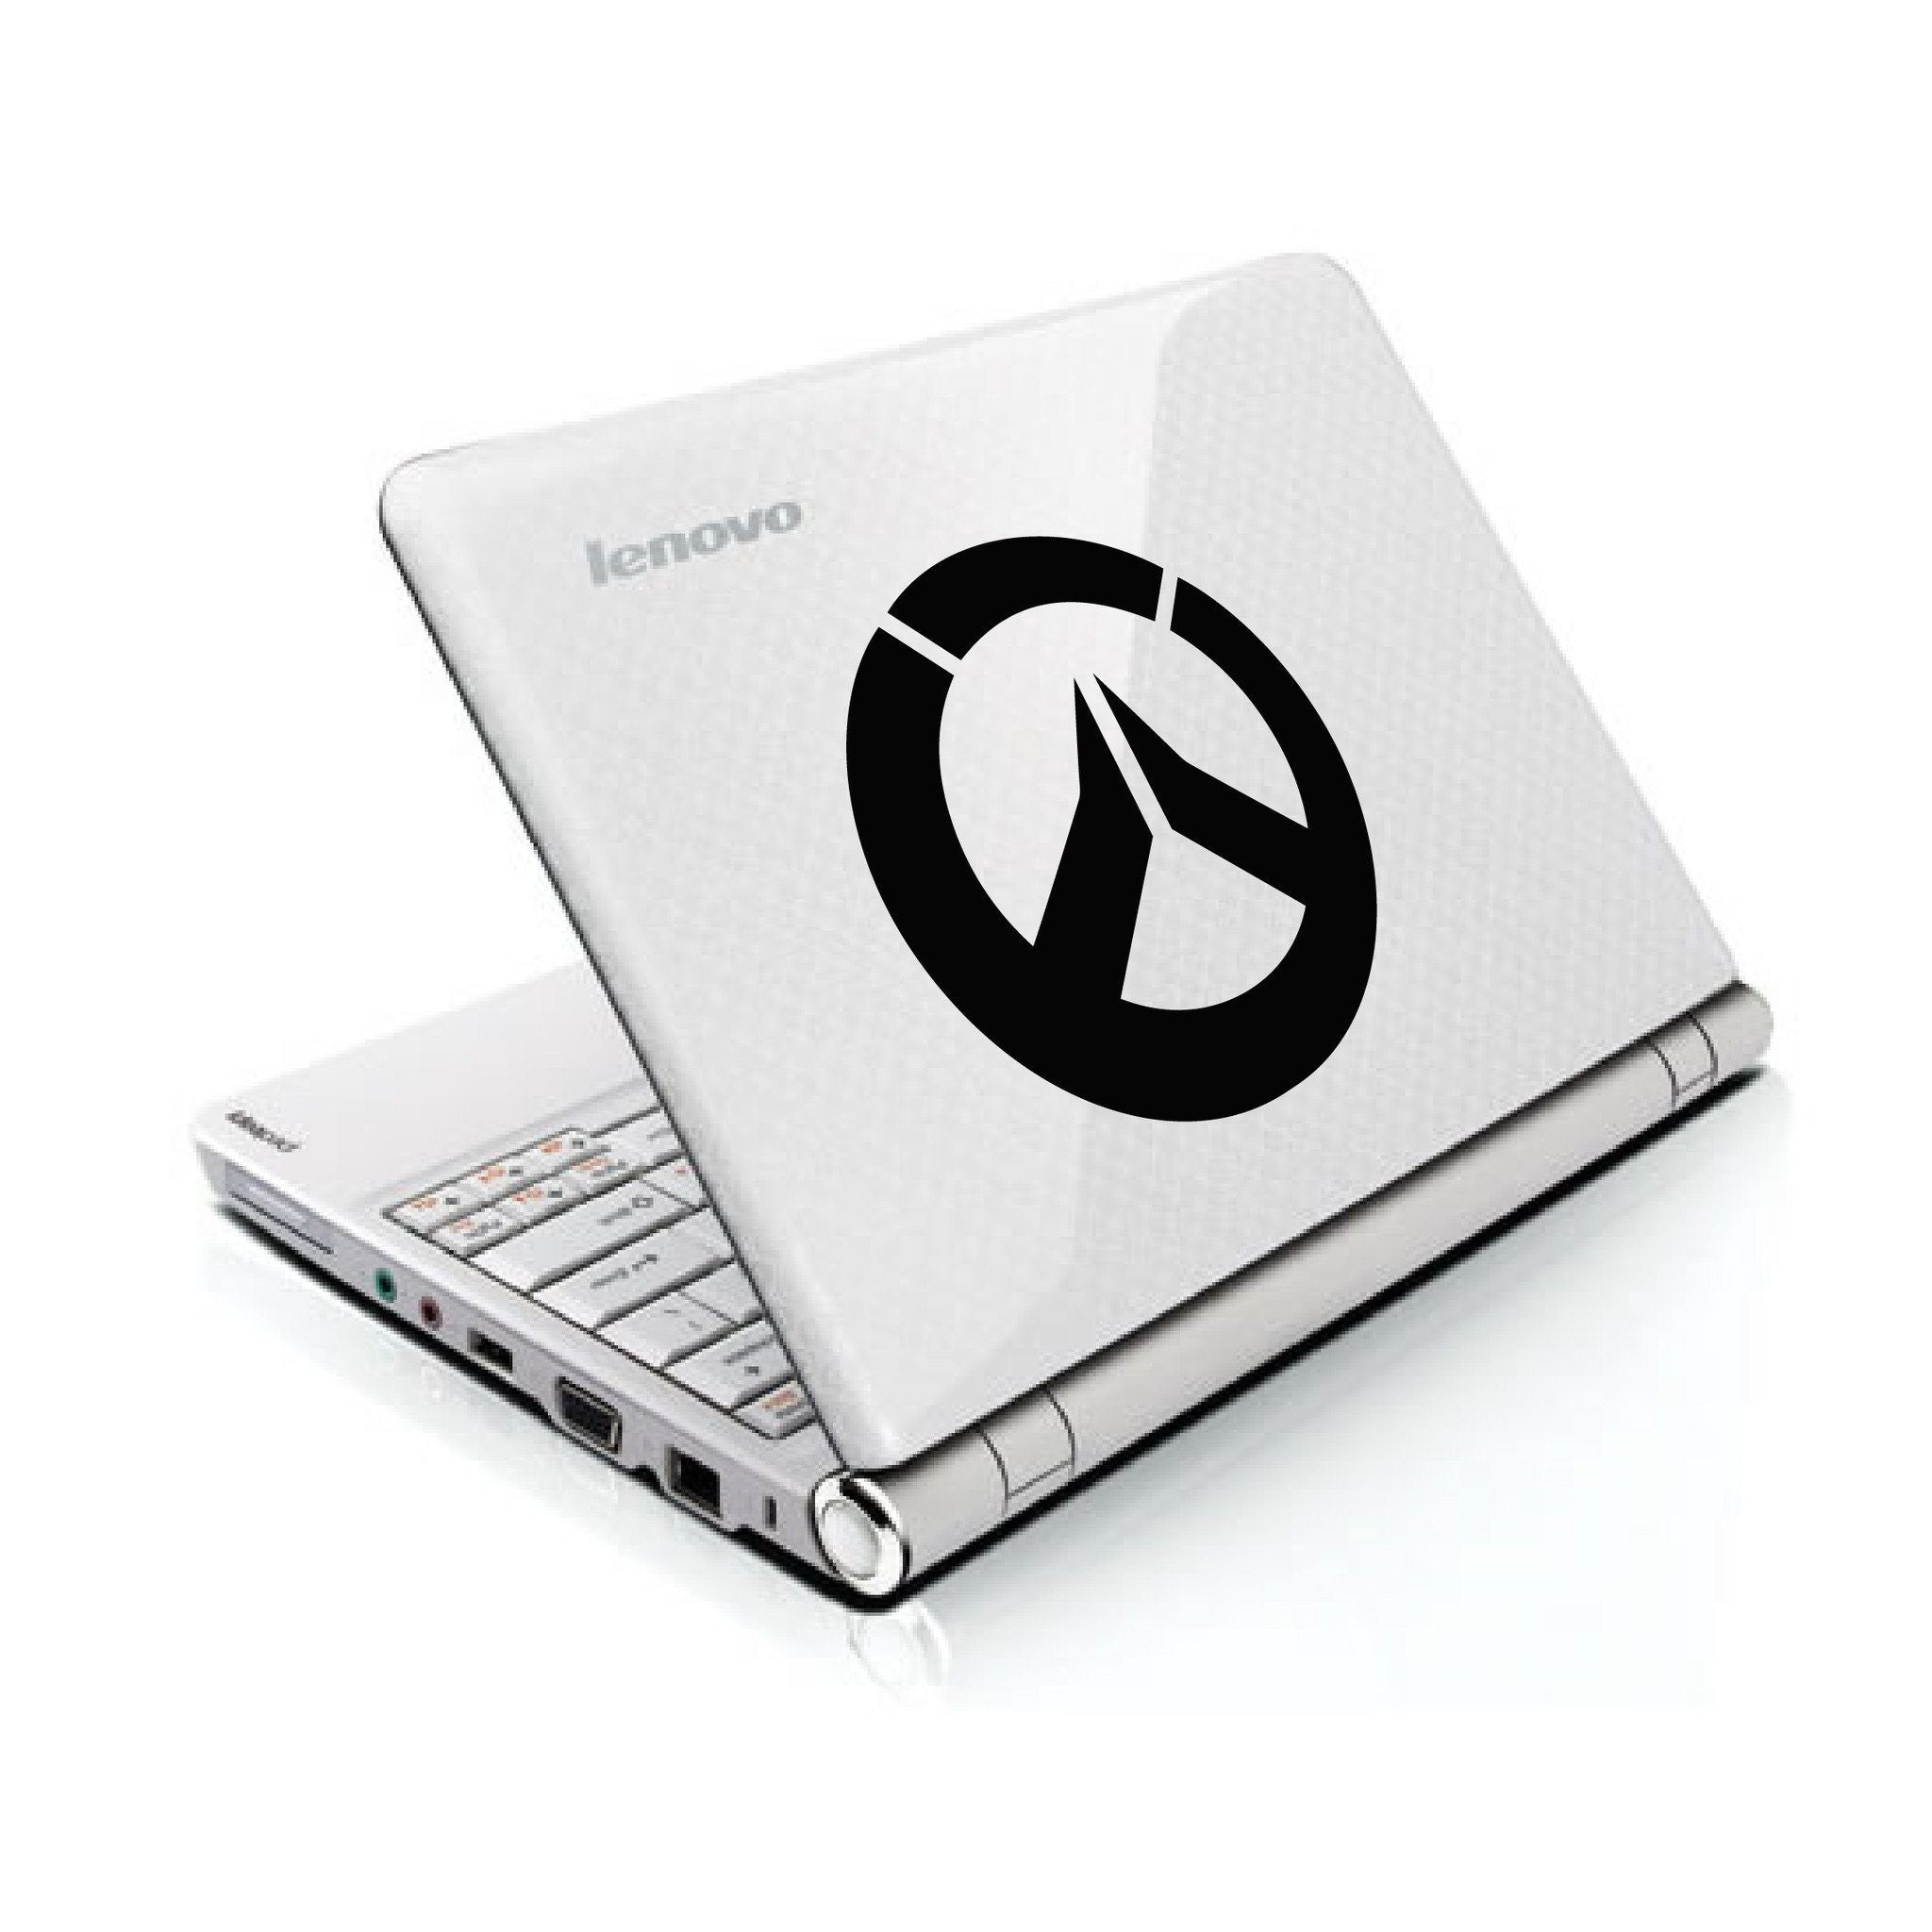 Overwatch Computer Game Logo Bumper/Phone/Laptop Sticker (AS11130) - Apex Stickers